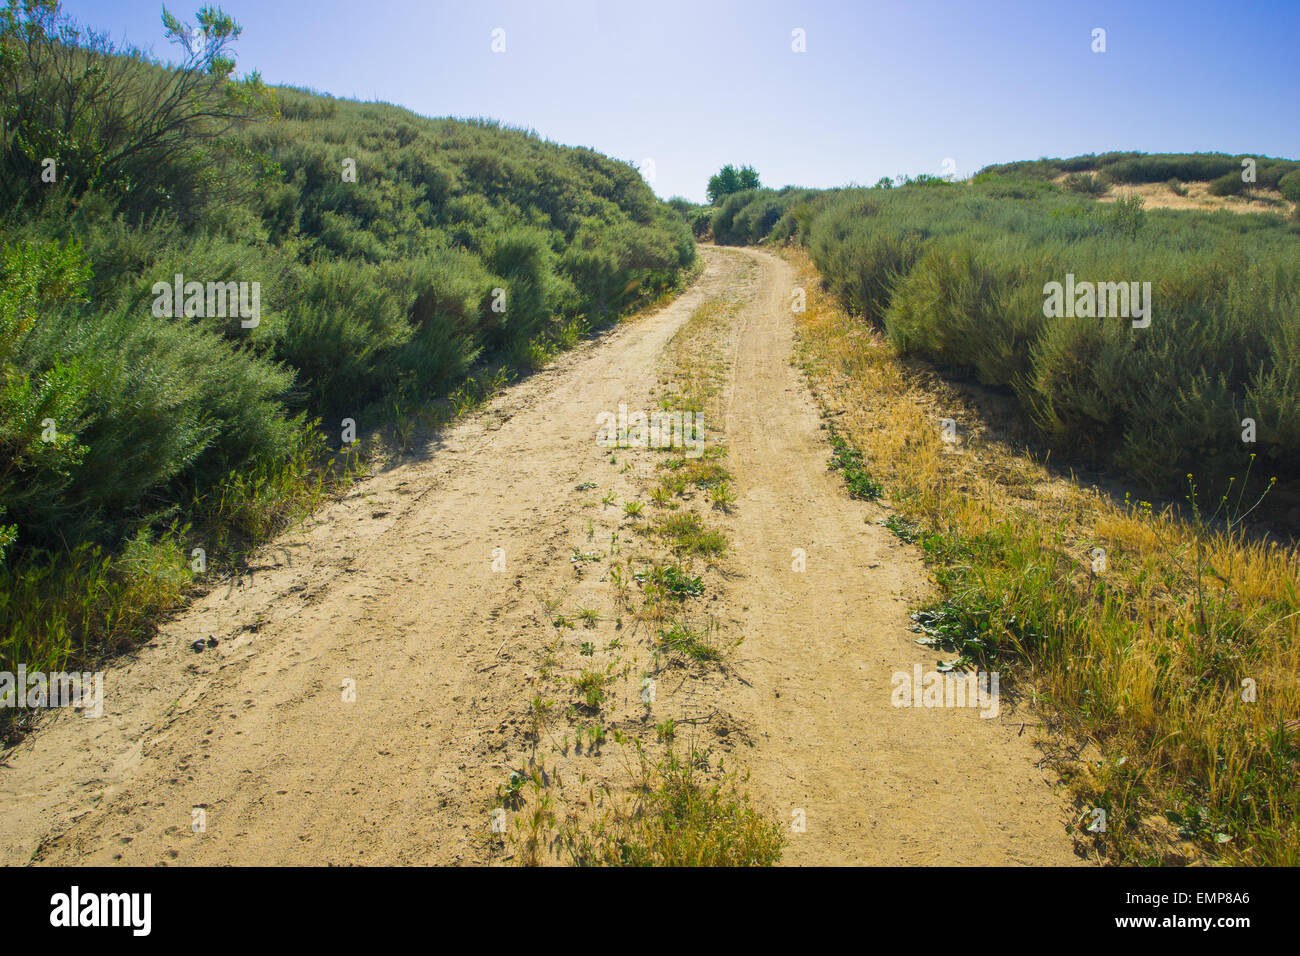 Flattened dirt track winds through shrubbery in California wilderness. Stock Photo